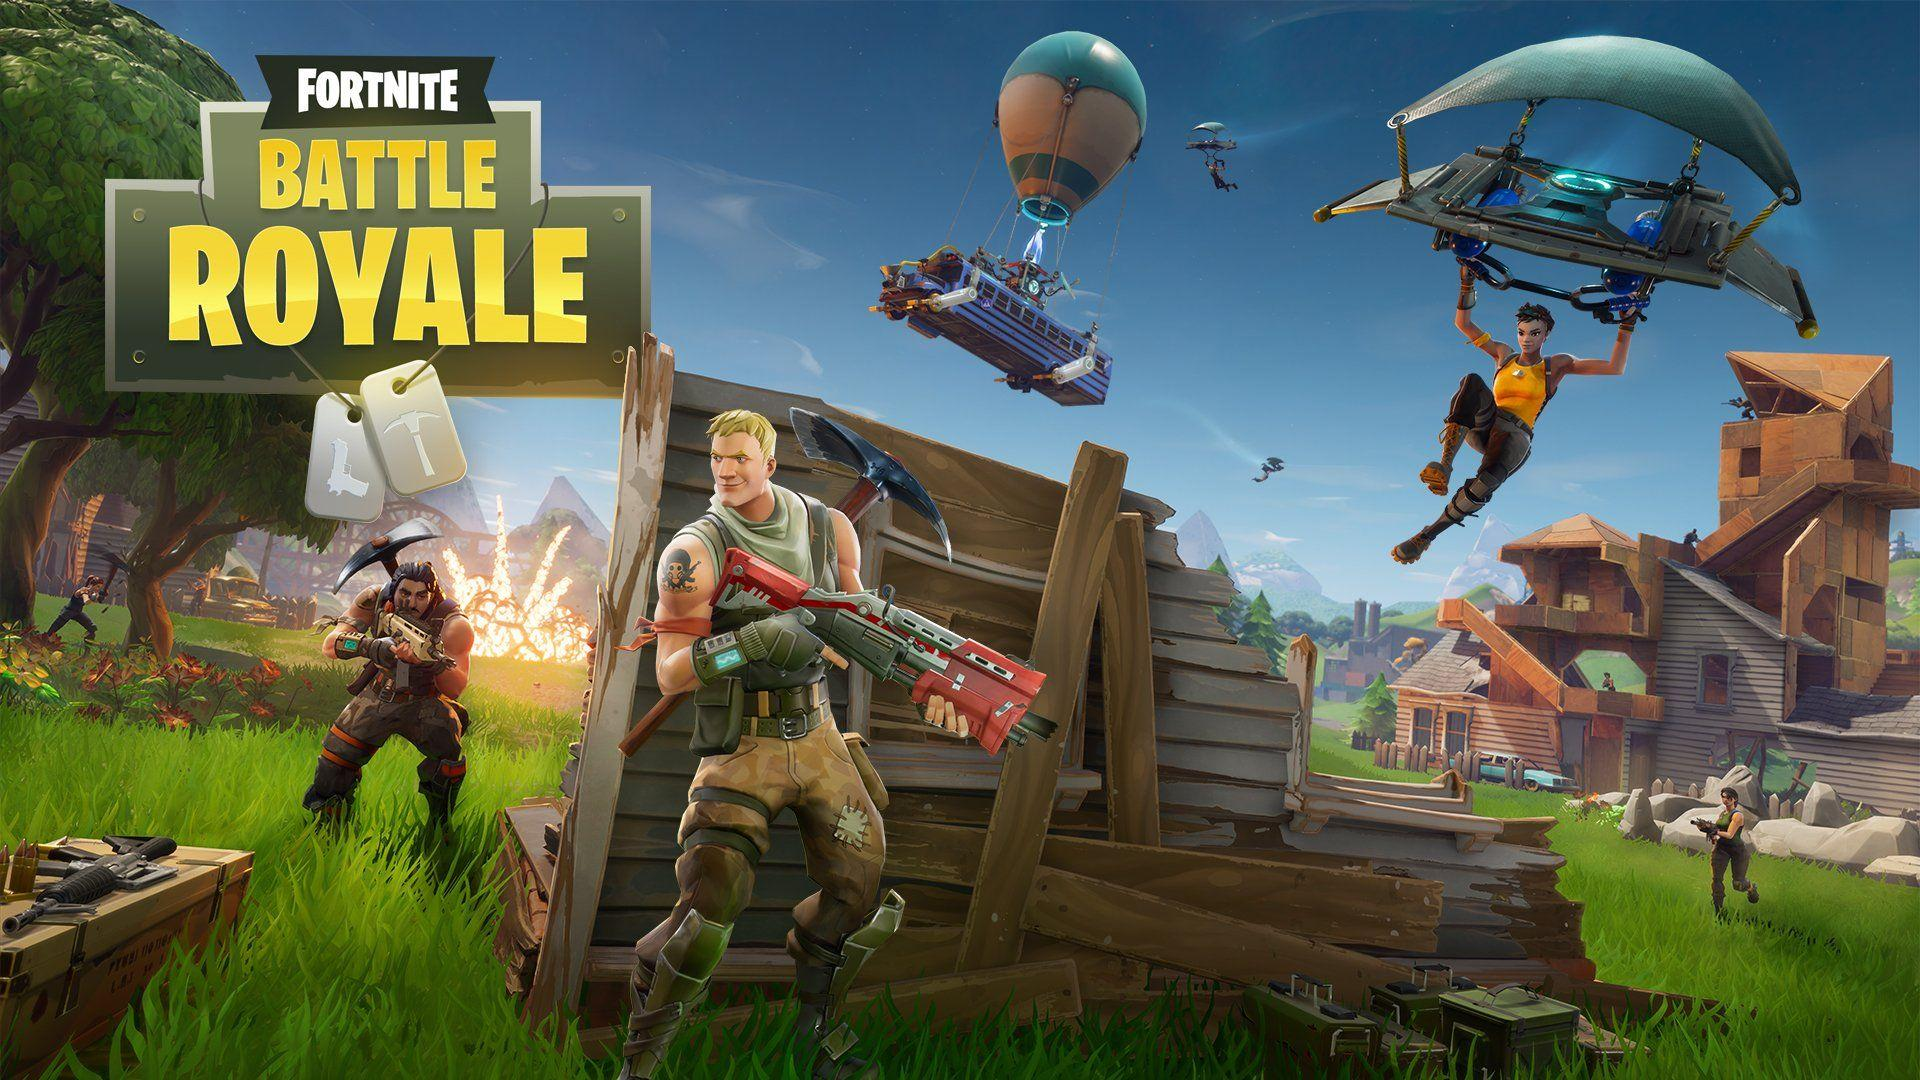 Fortnite pictures